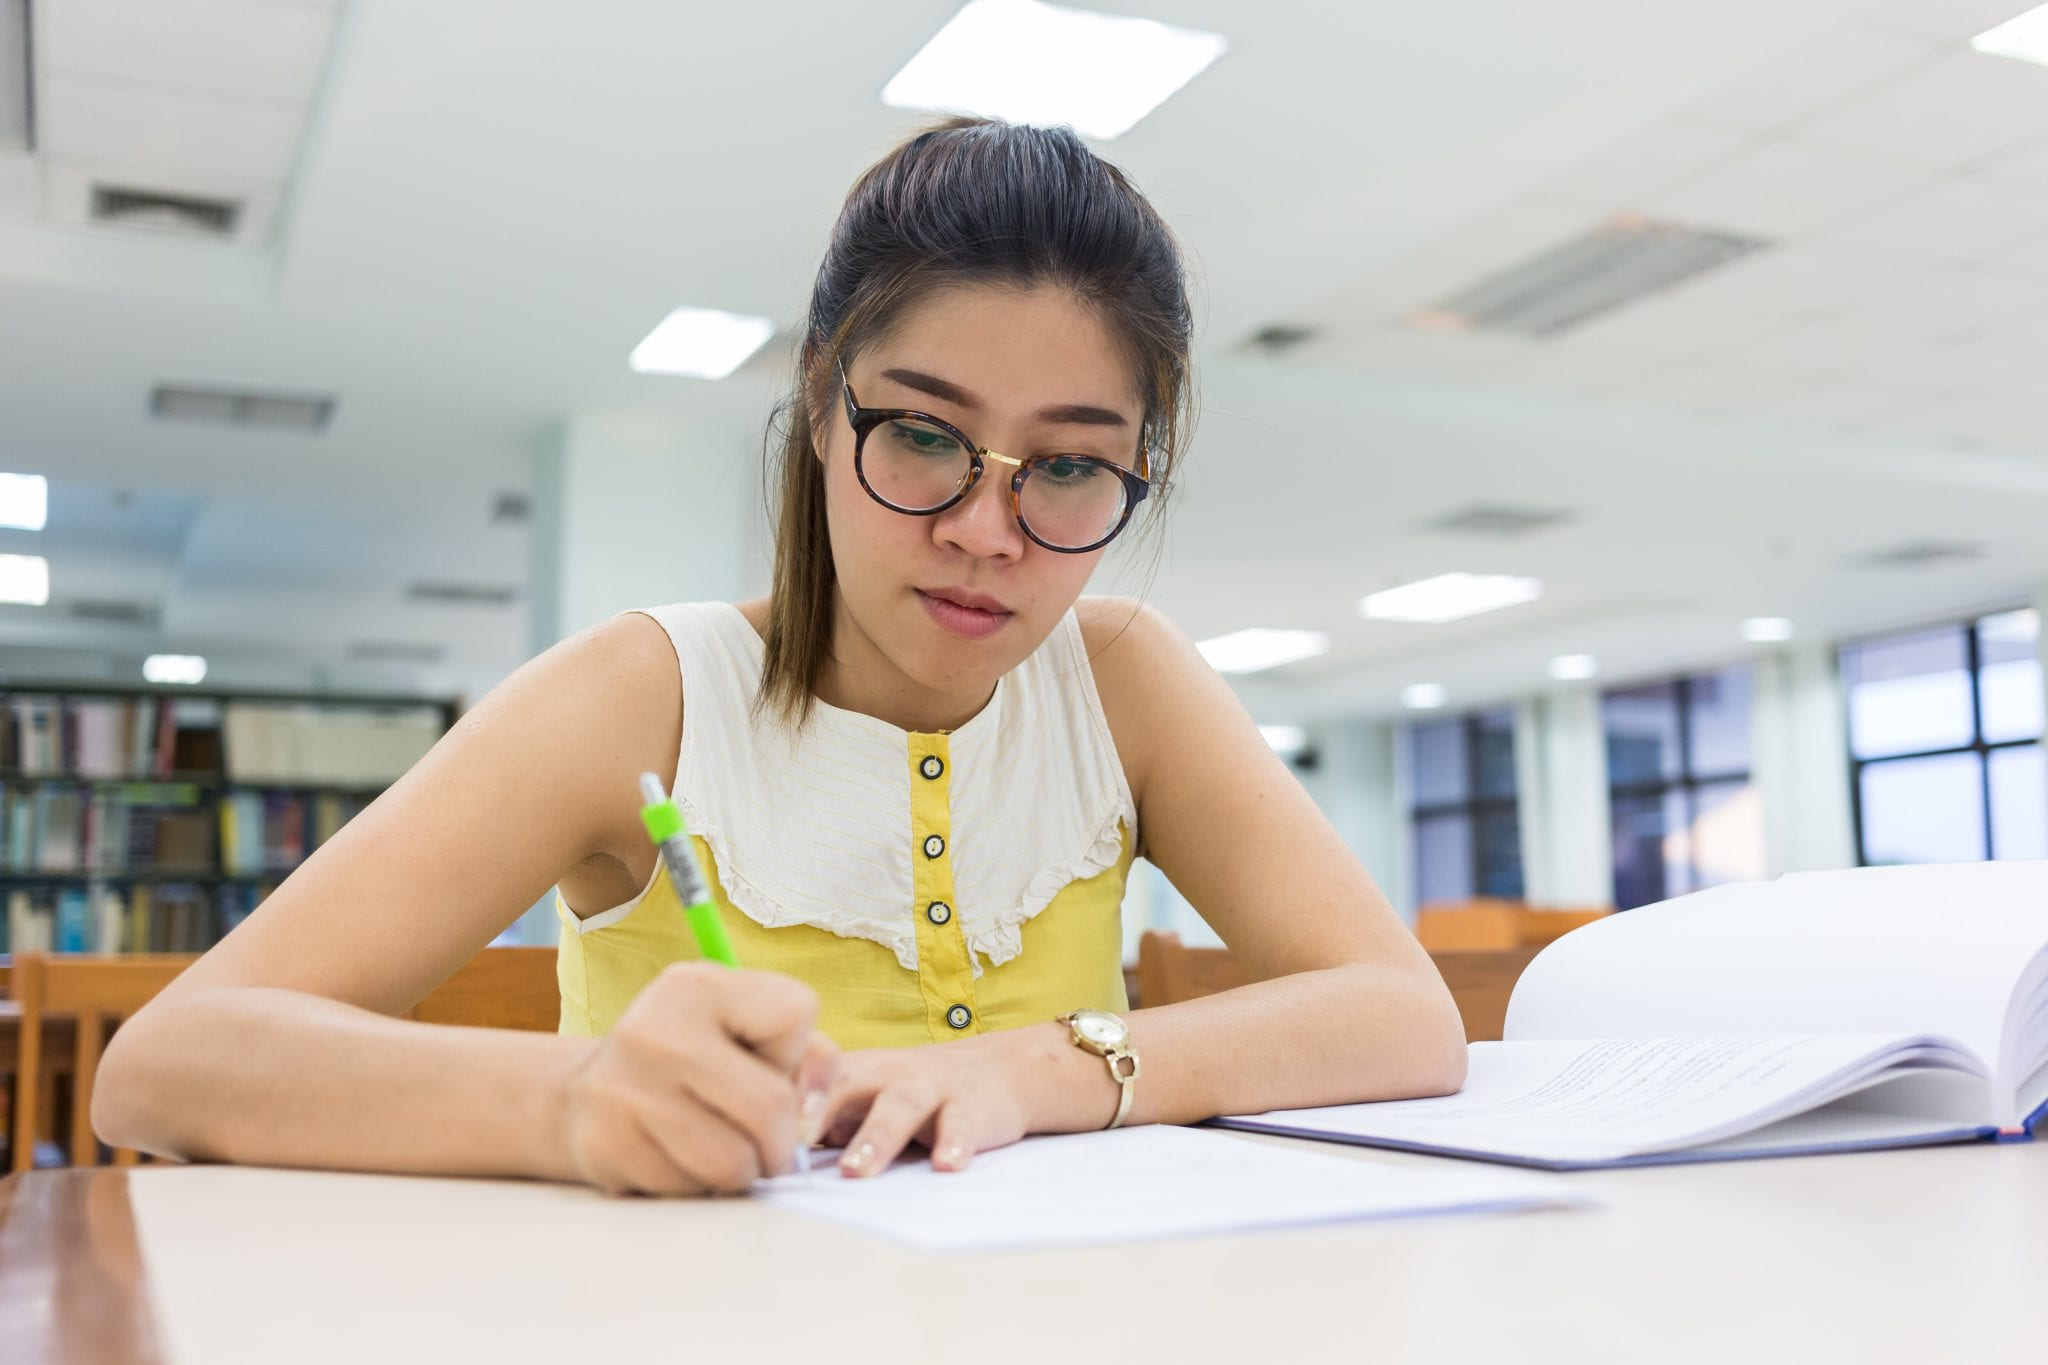 essay contests for high school students